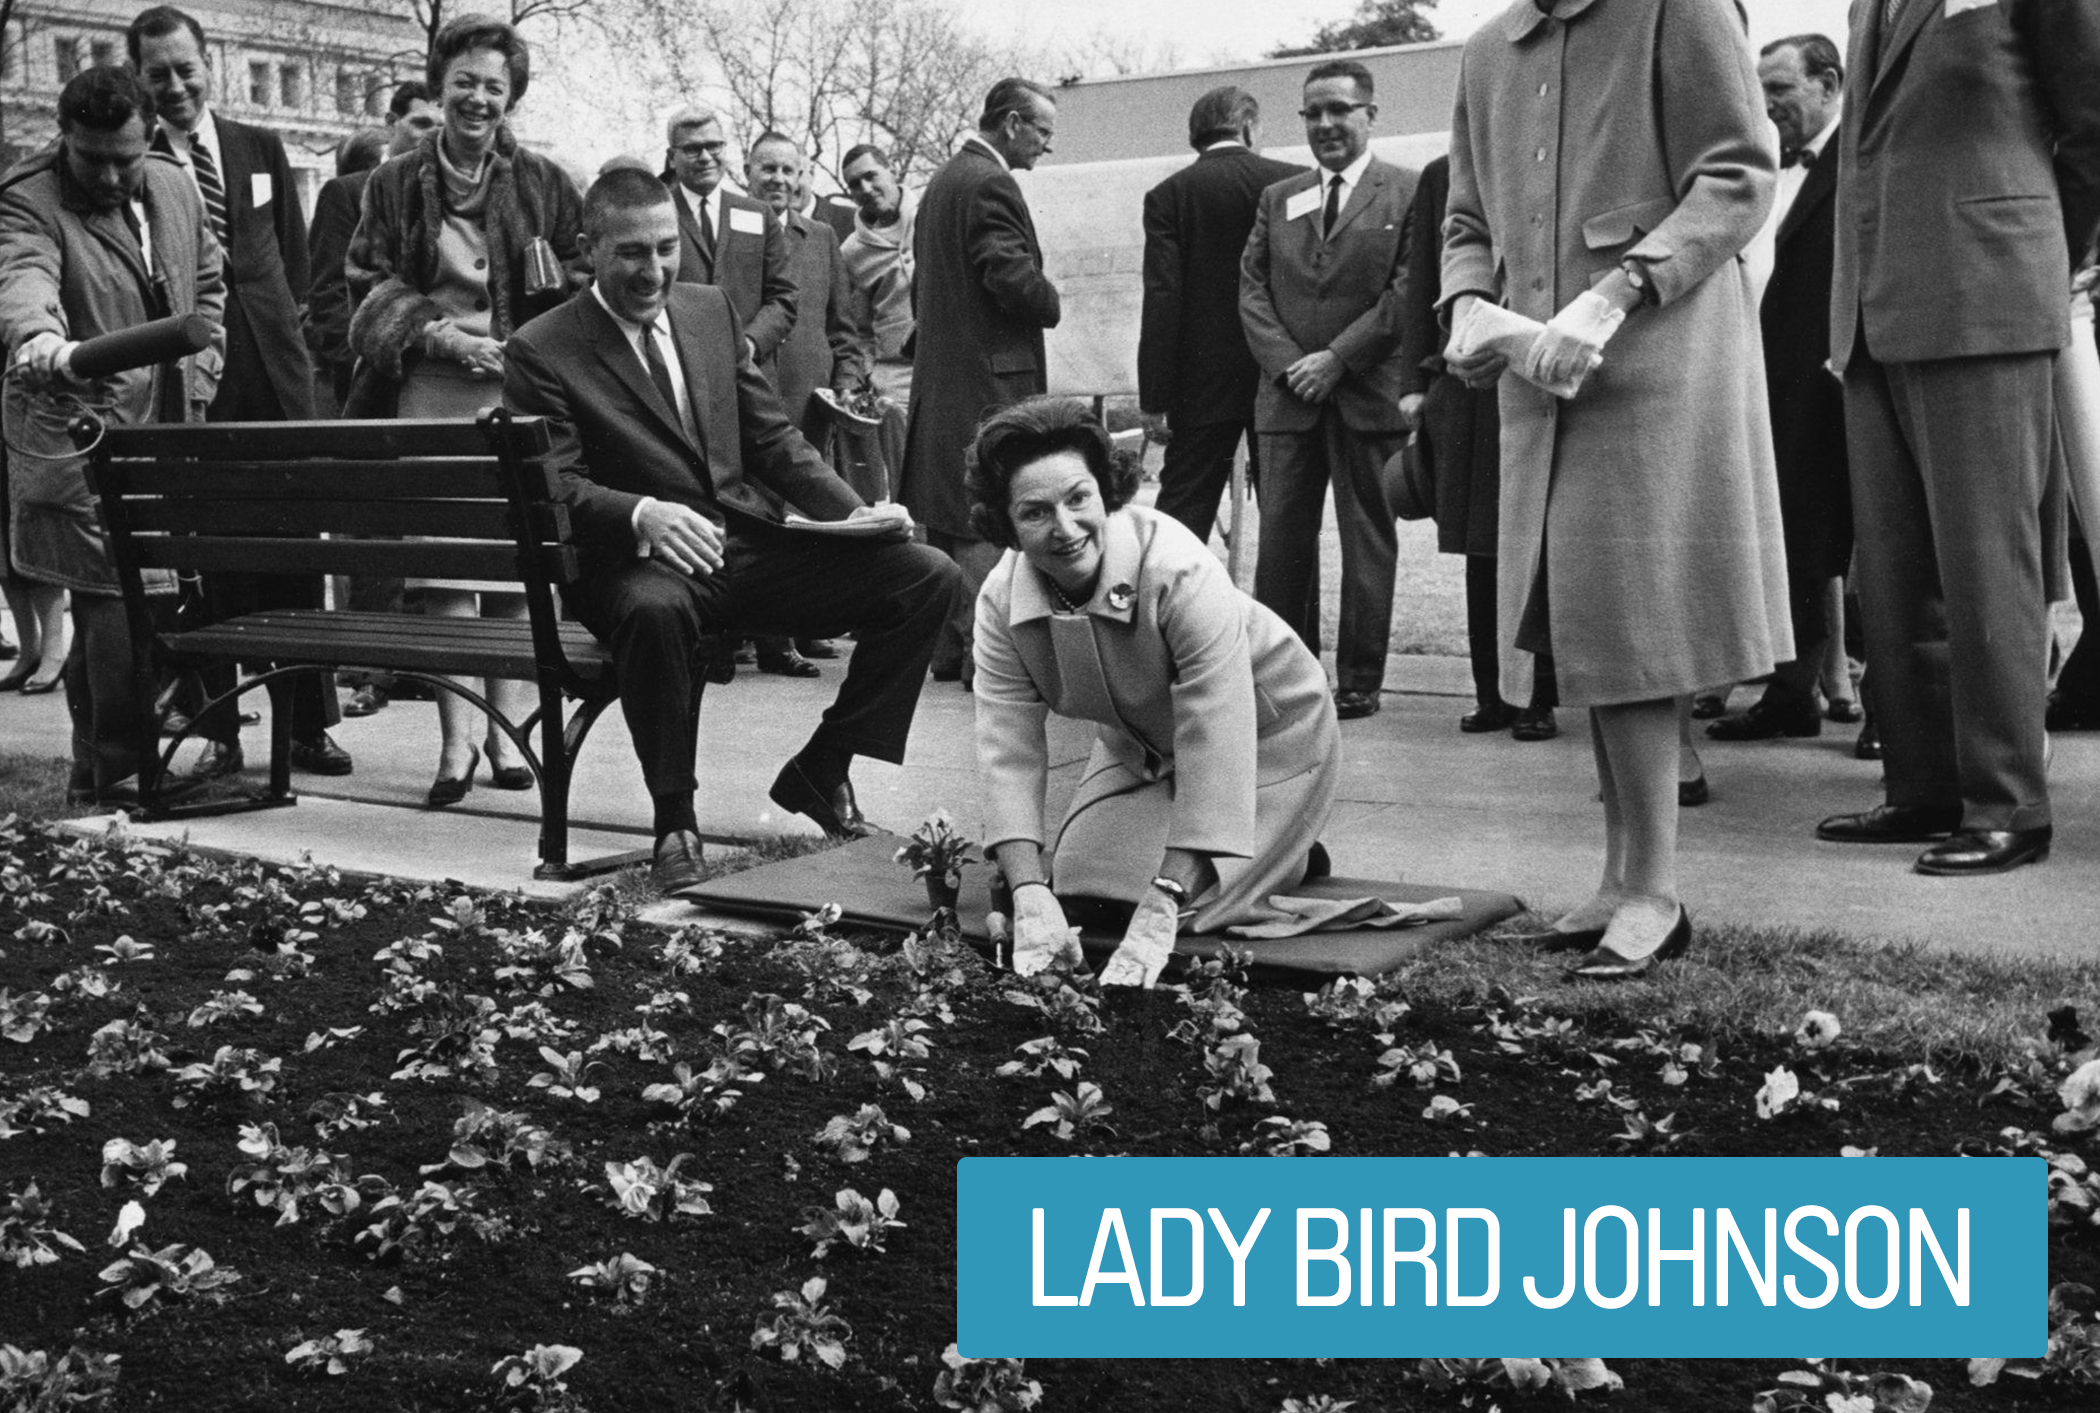 """Lady Bird Johnson's focus was her """"Beautification"""" initiative. The effort included urban landscaping and development of the mall in the nation's capitol, preservation and conservation efforts in the national parks, anti-pollution campaigns and  environmental legislation."""